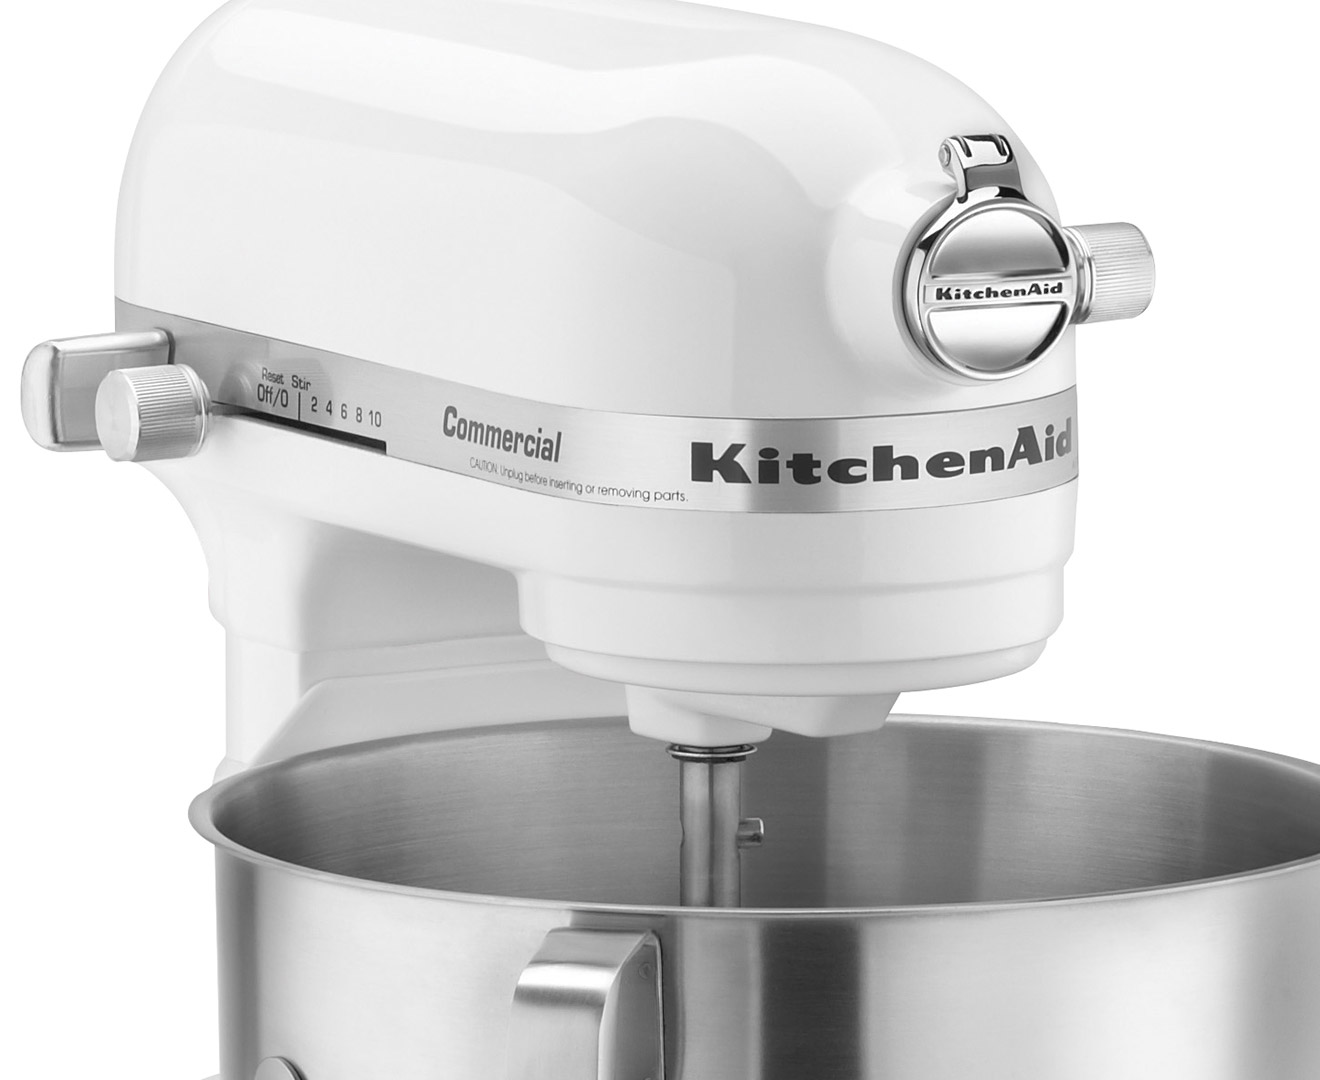 Kitchenaid Ksm7590 Stand Mixer Refurb White Scoopon